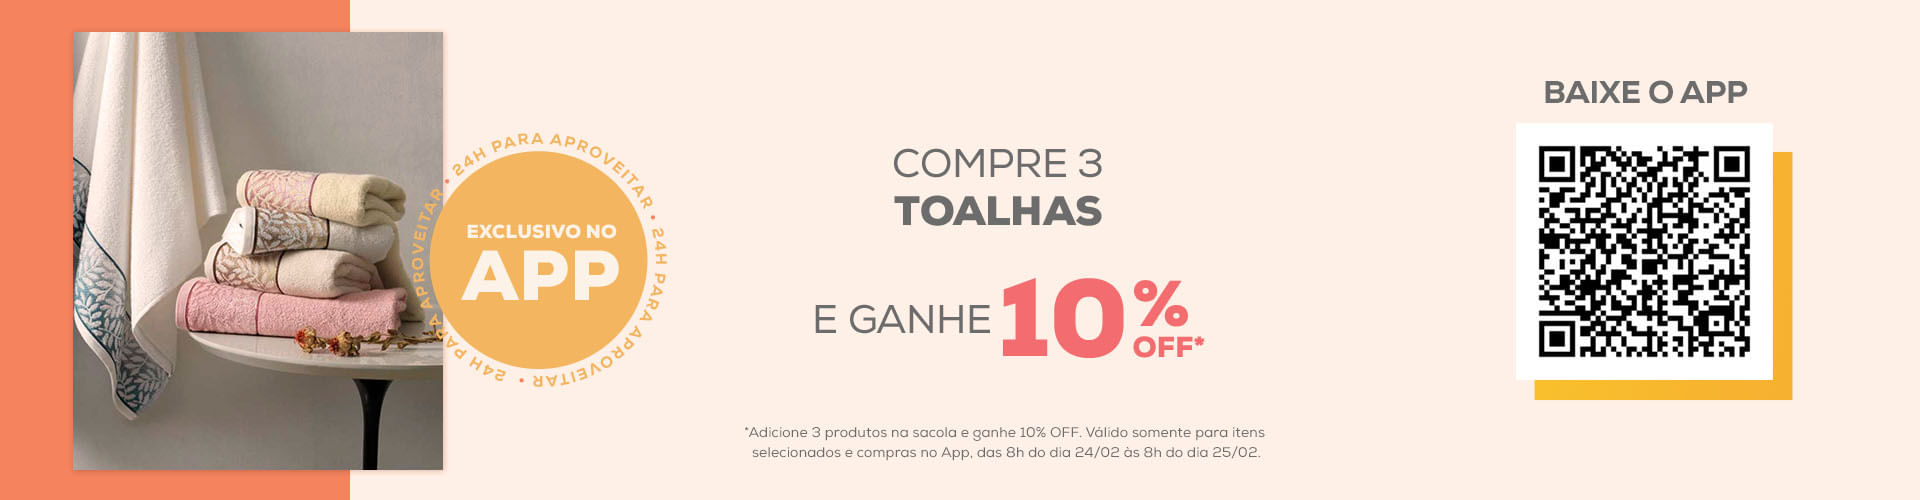 Ação exclusiva APP